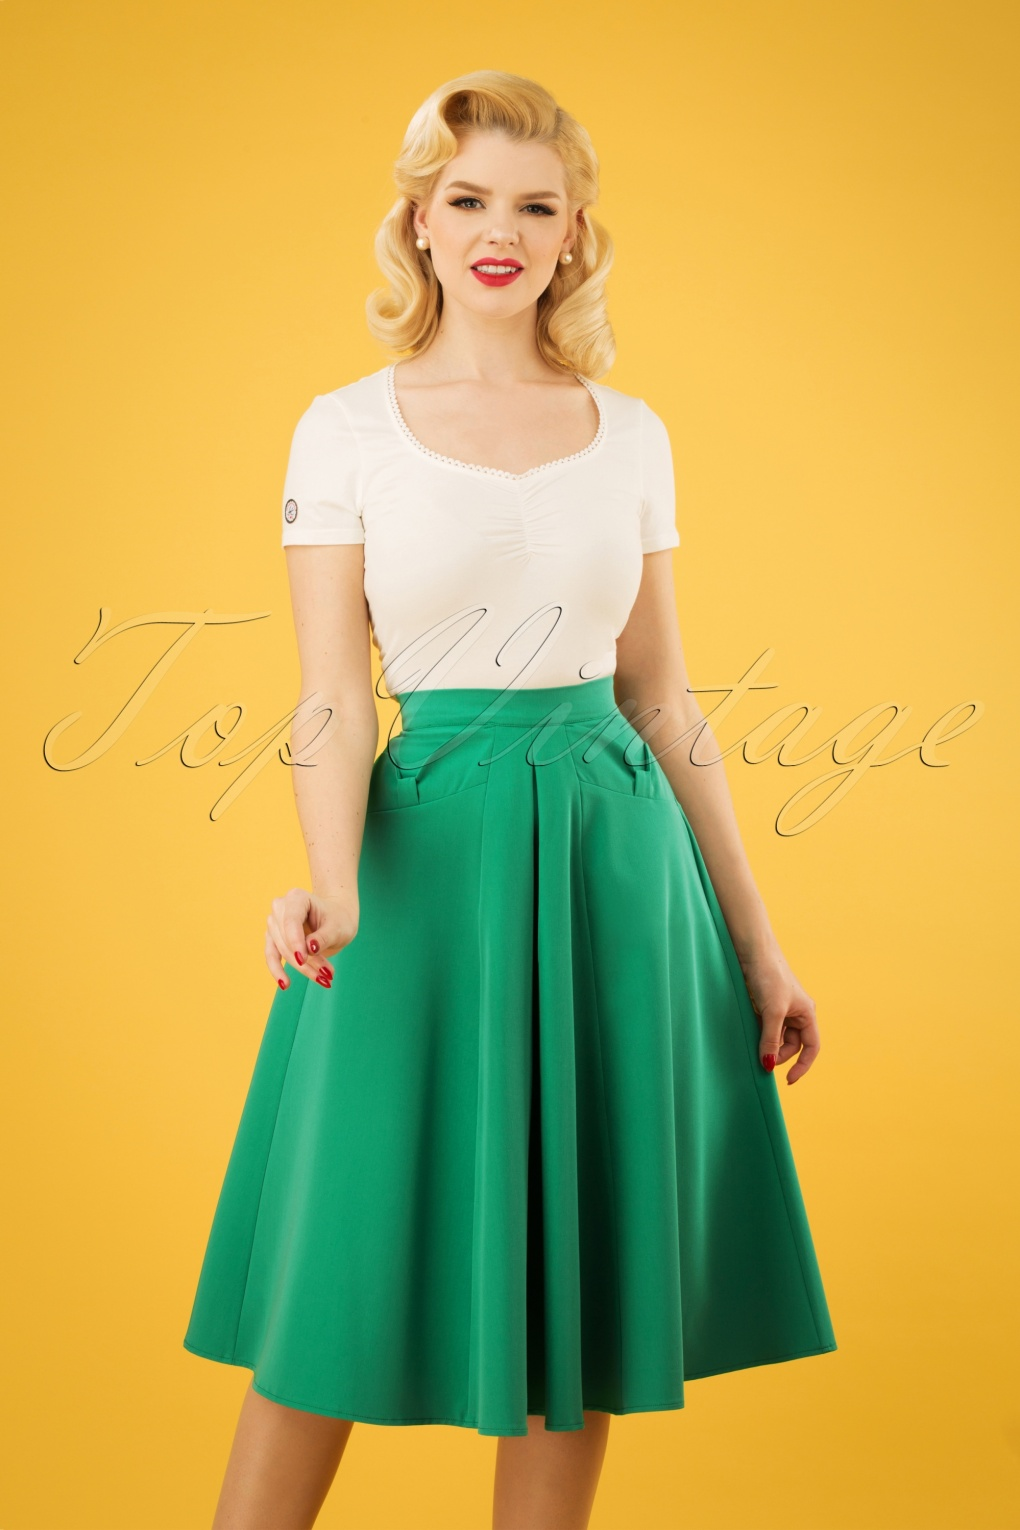 1940s Dresses and Clothing UK | 40s Shoes UK 40s Boheme Gia Bow Swing Skirt in Emerald Green £34.81 AT vintagedancer.com